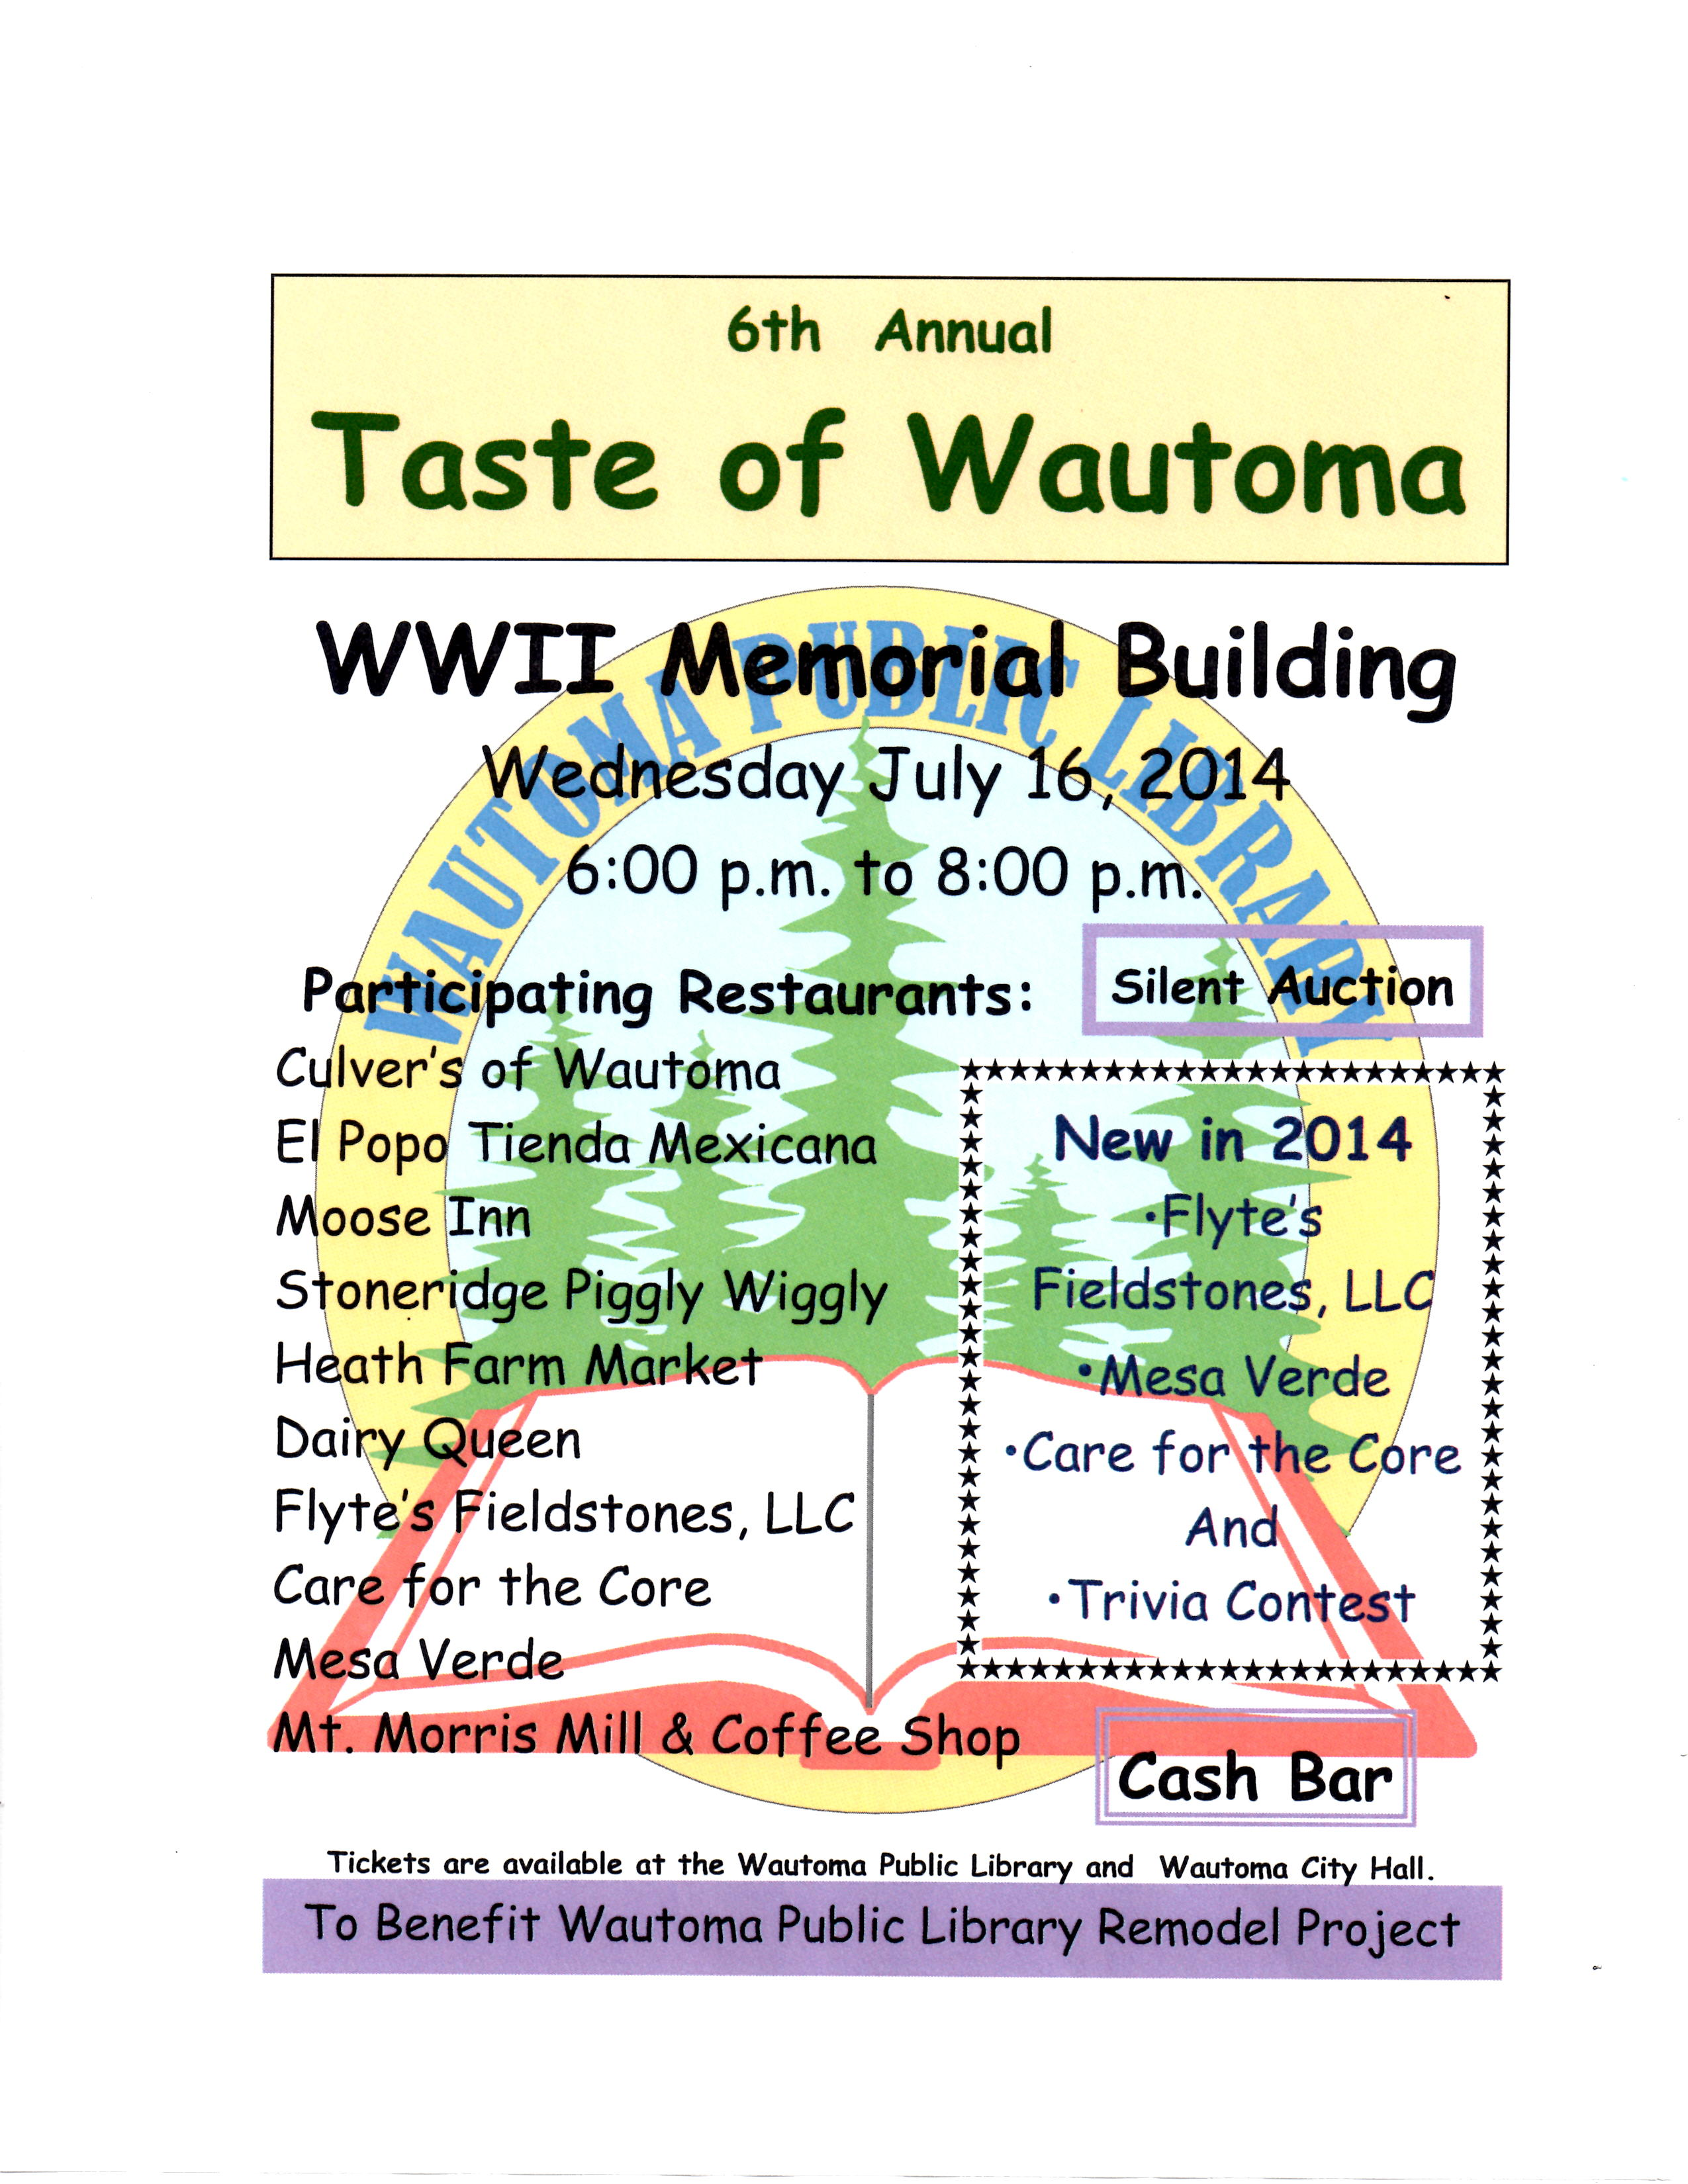 Updated Taste of Wautoma 2014 picture